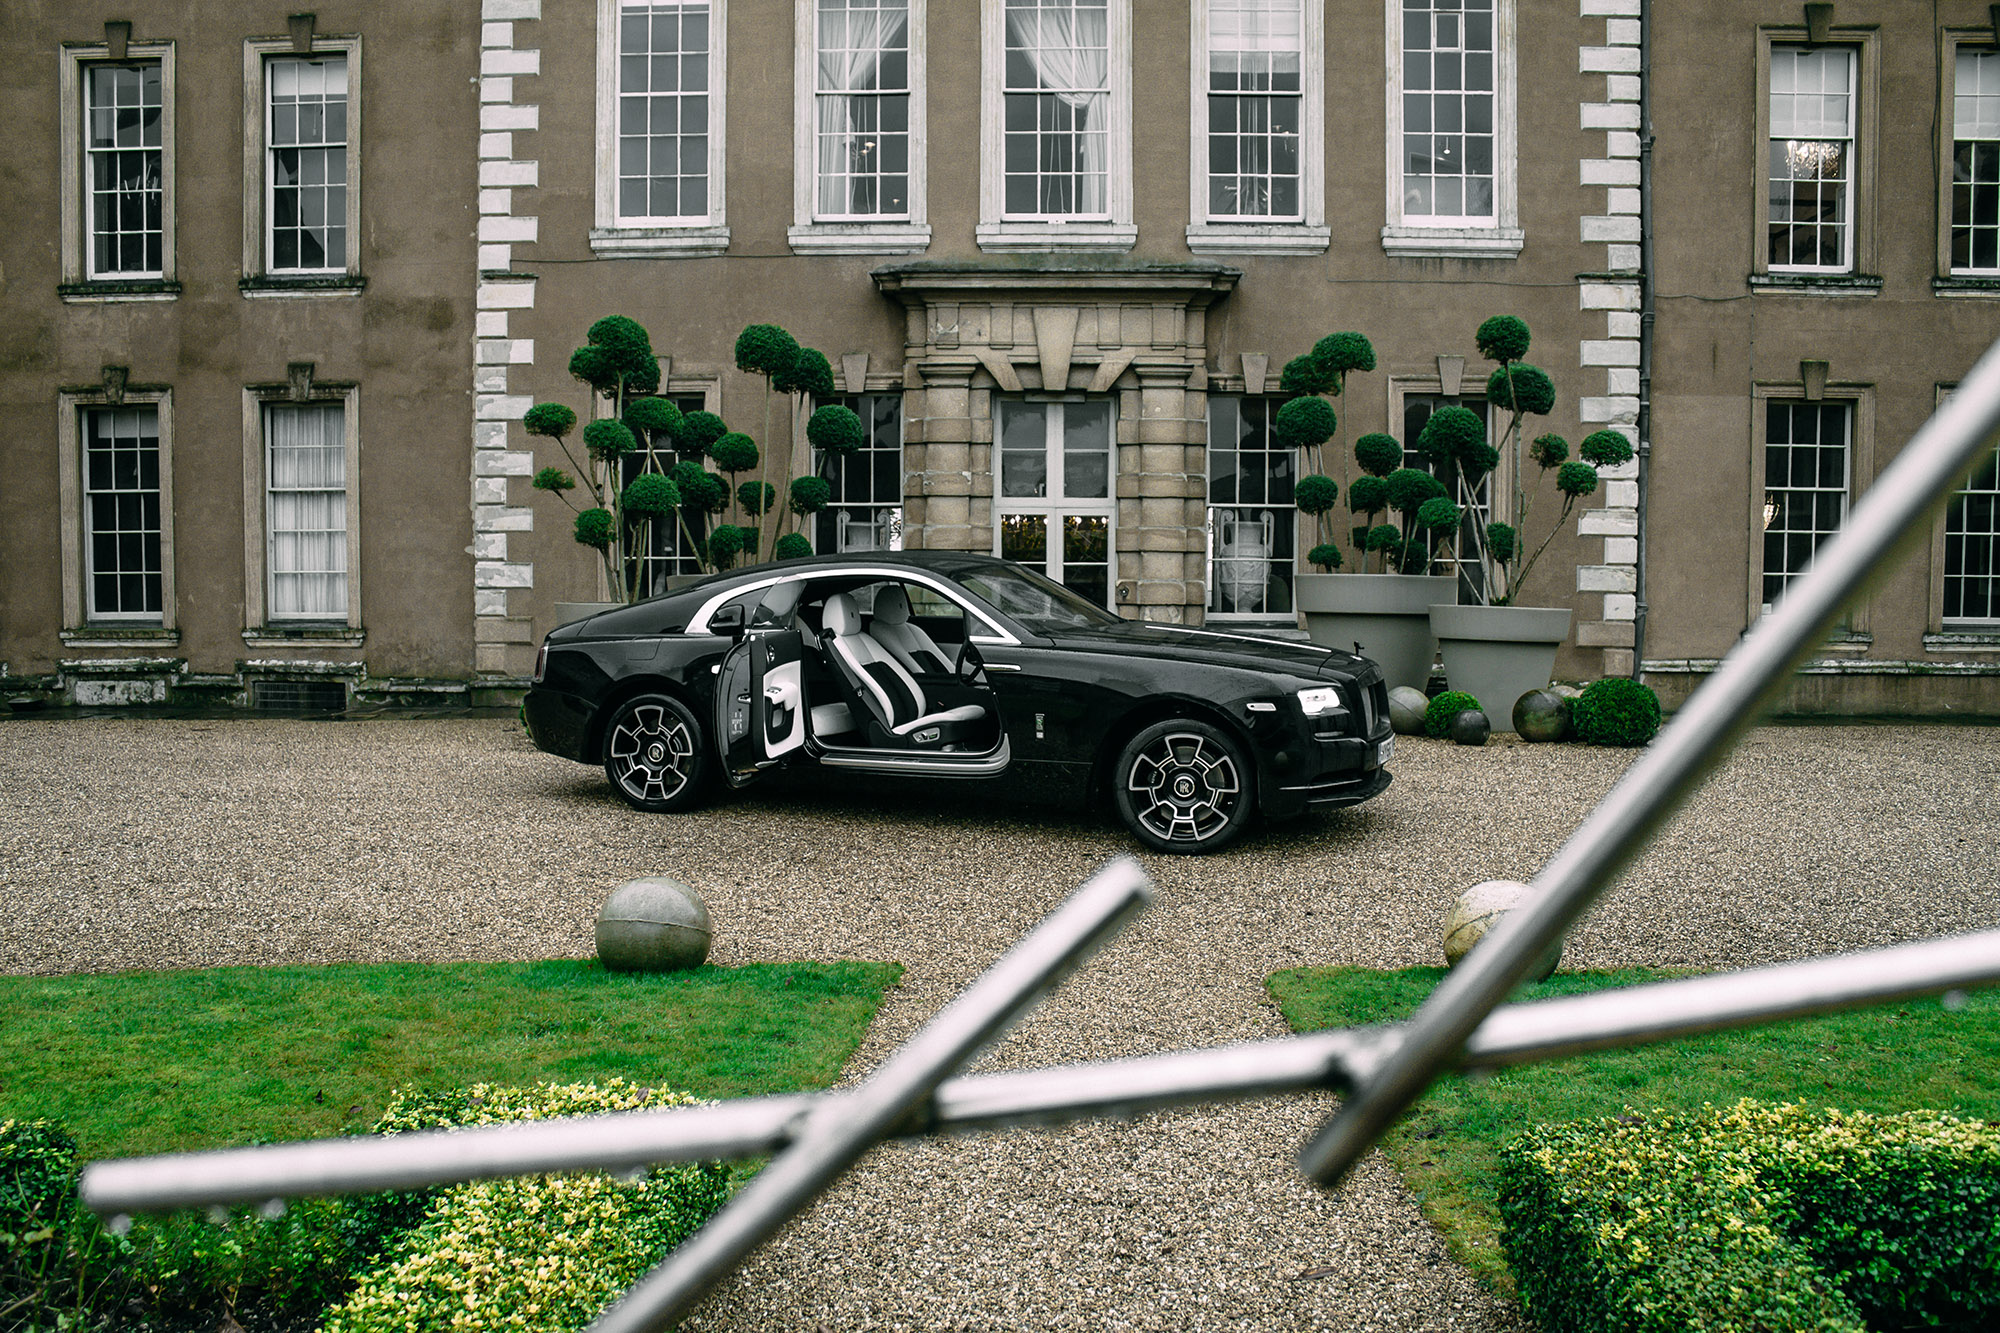 Driving The Black Badge Rolls Royce Wraith 4